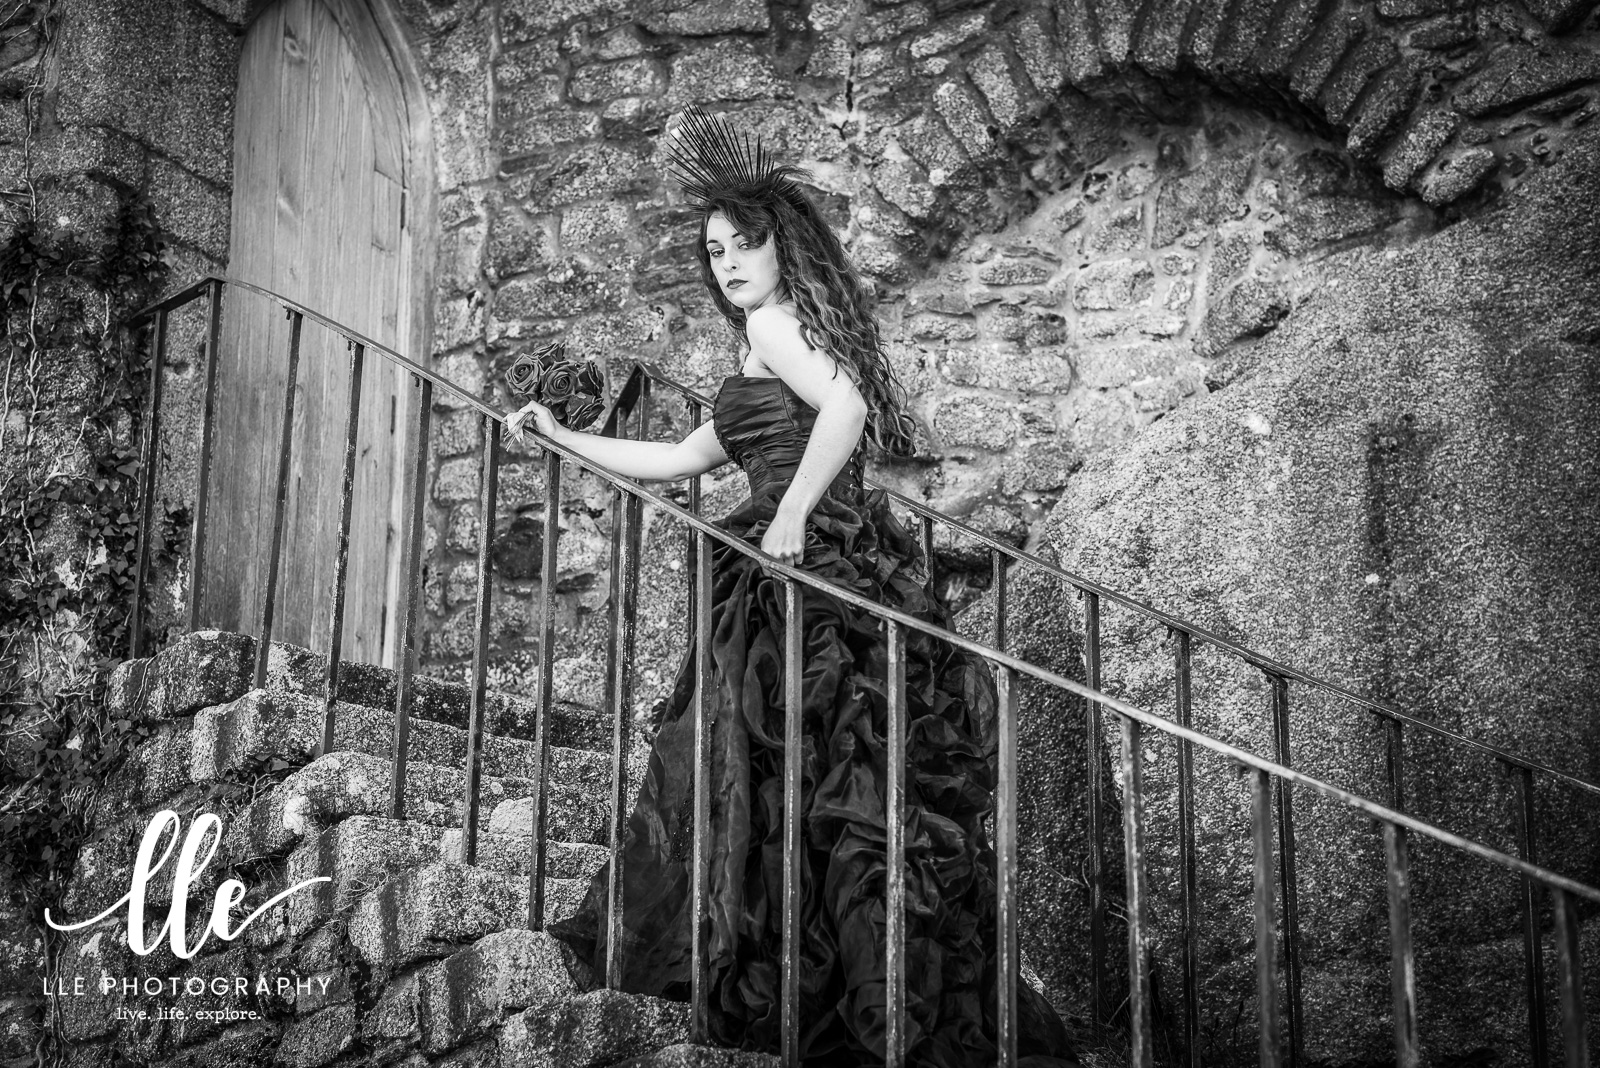 Gothic Portrait Photography shoot at Carn Brea, Cornwall